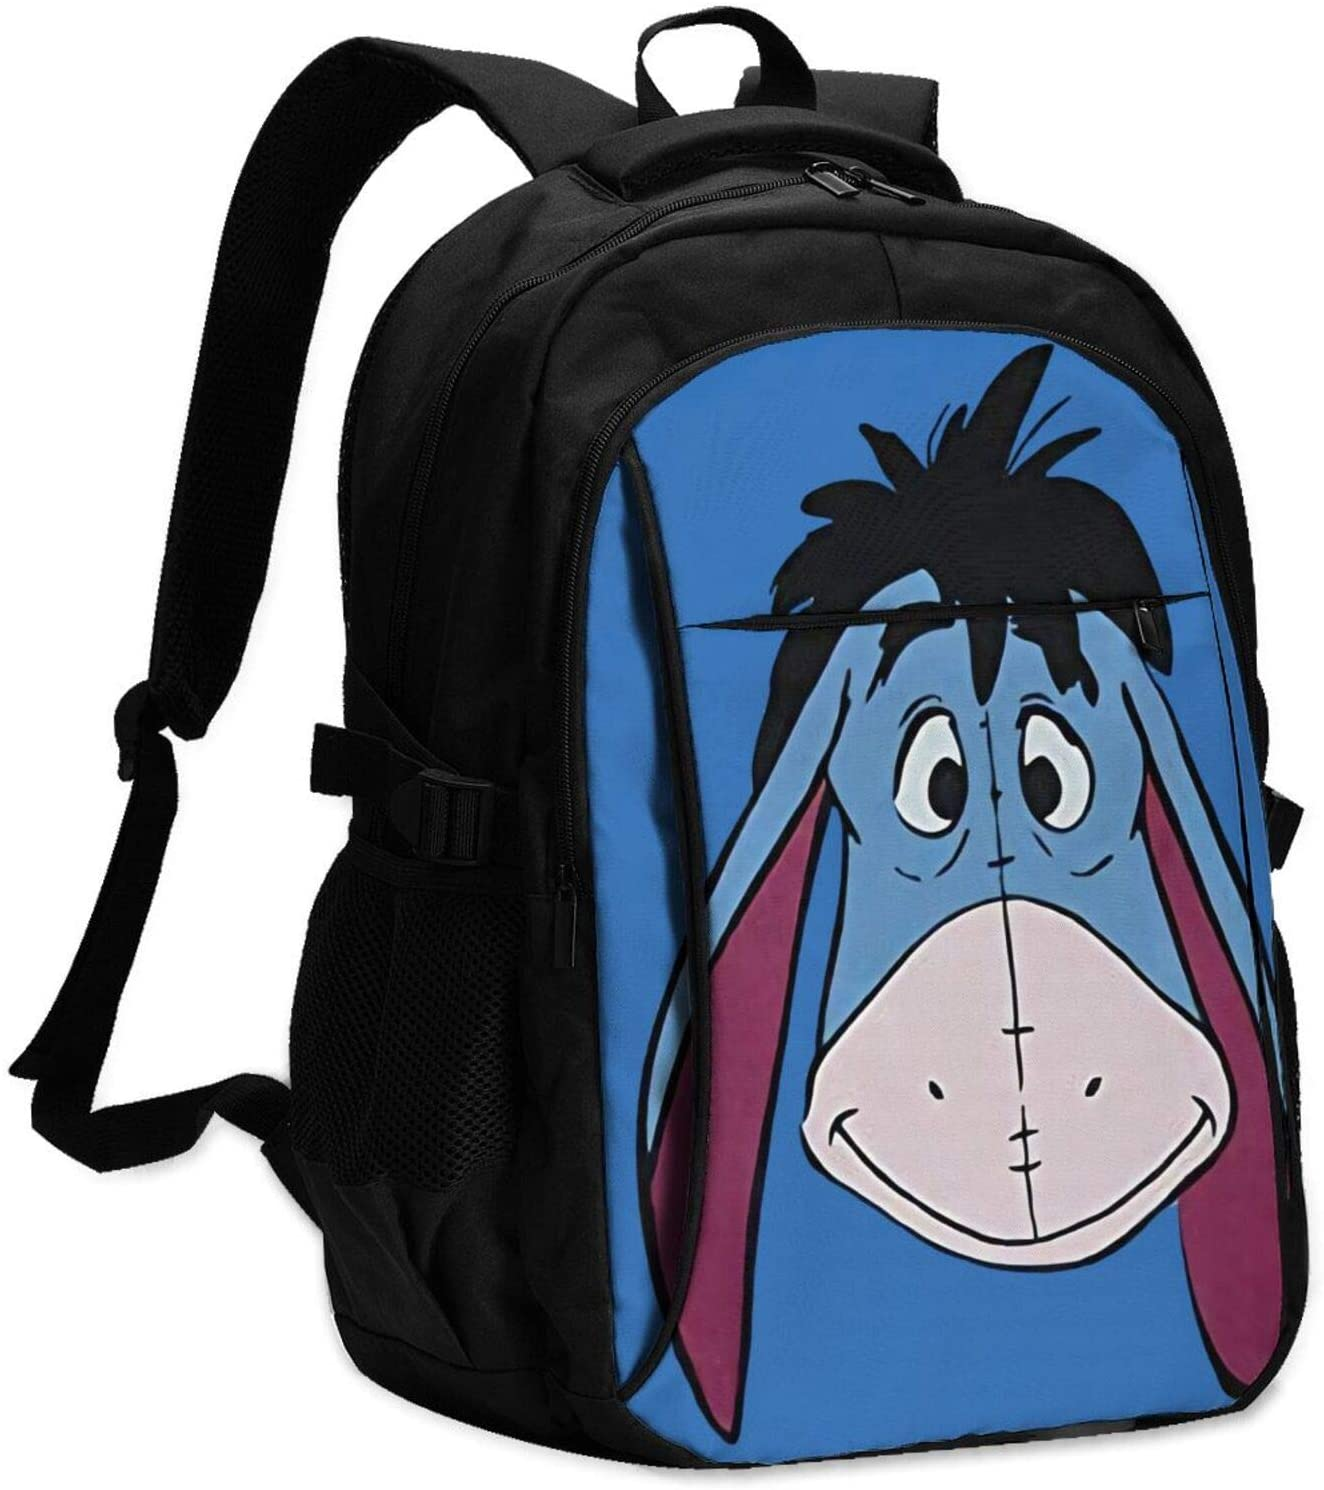 Lingassassin Eeyore Unisex Casual and Durable Large-Capacity Laptop Bag with USB Charging Port, Black Shoulders Suitable for Hiking